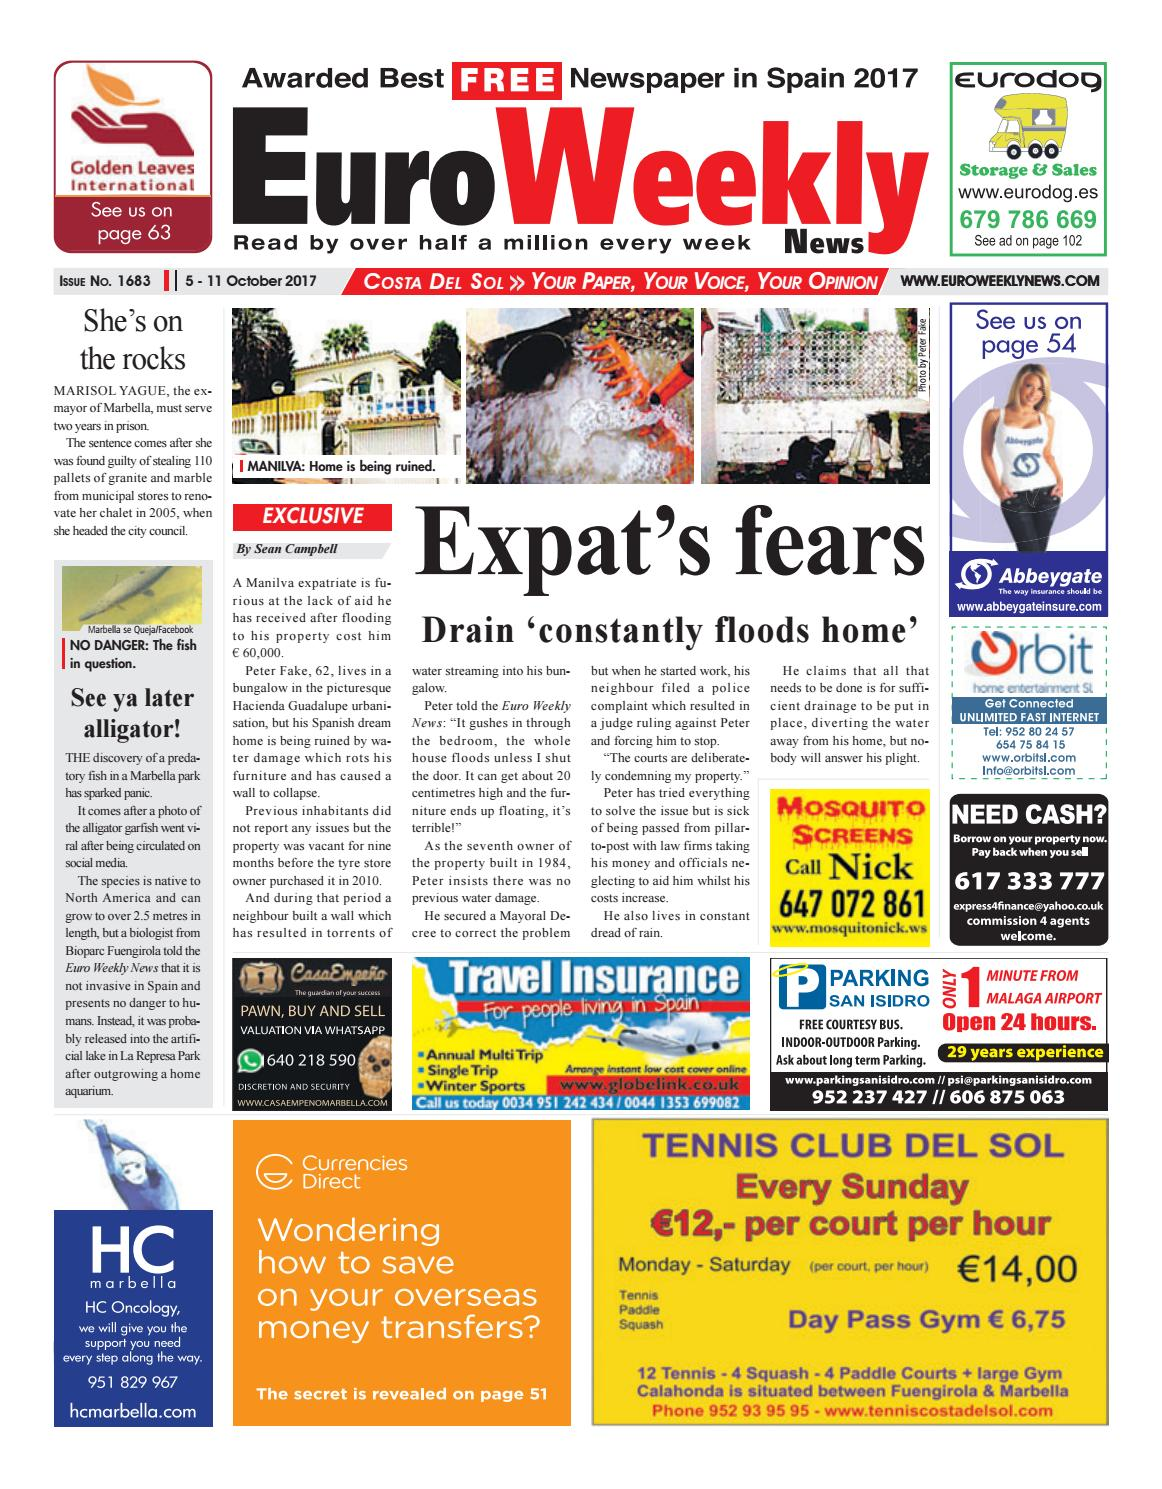 Euro Weekly News - Costa del Sol 05 – 11 October 2017 Issue 1683